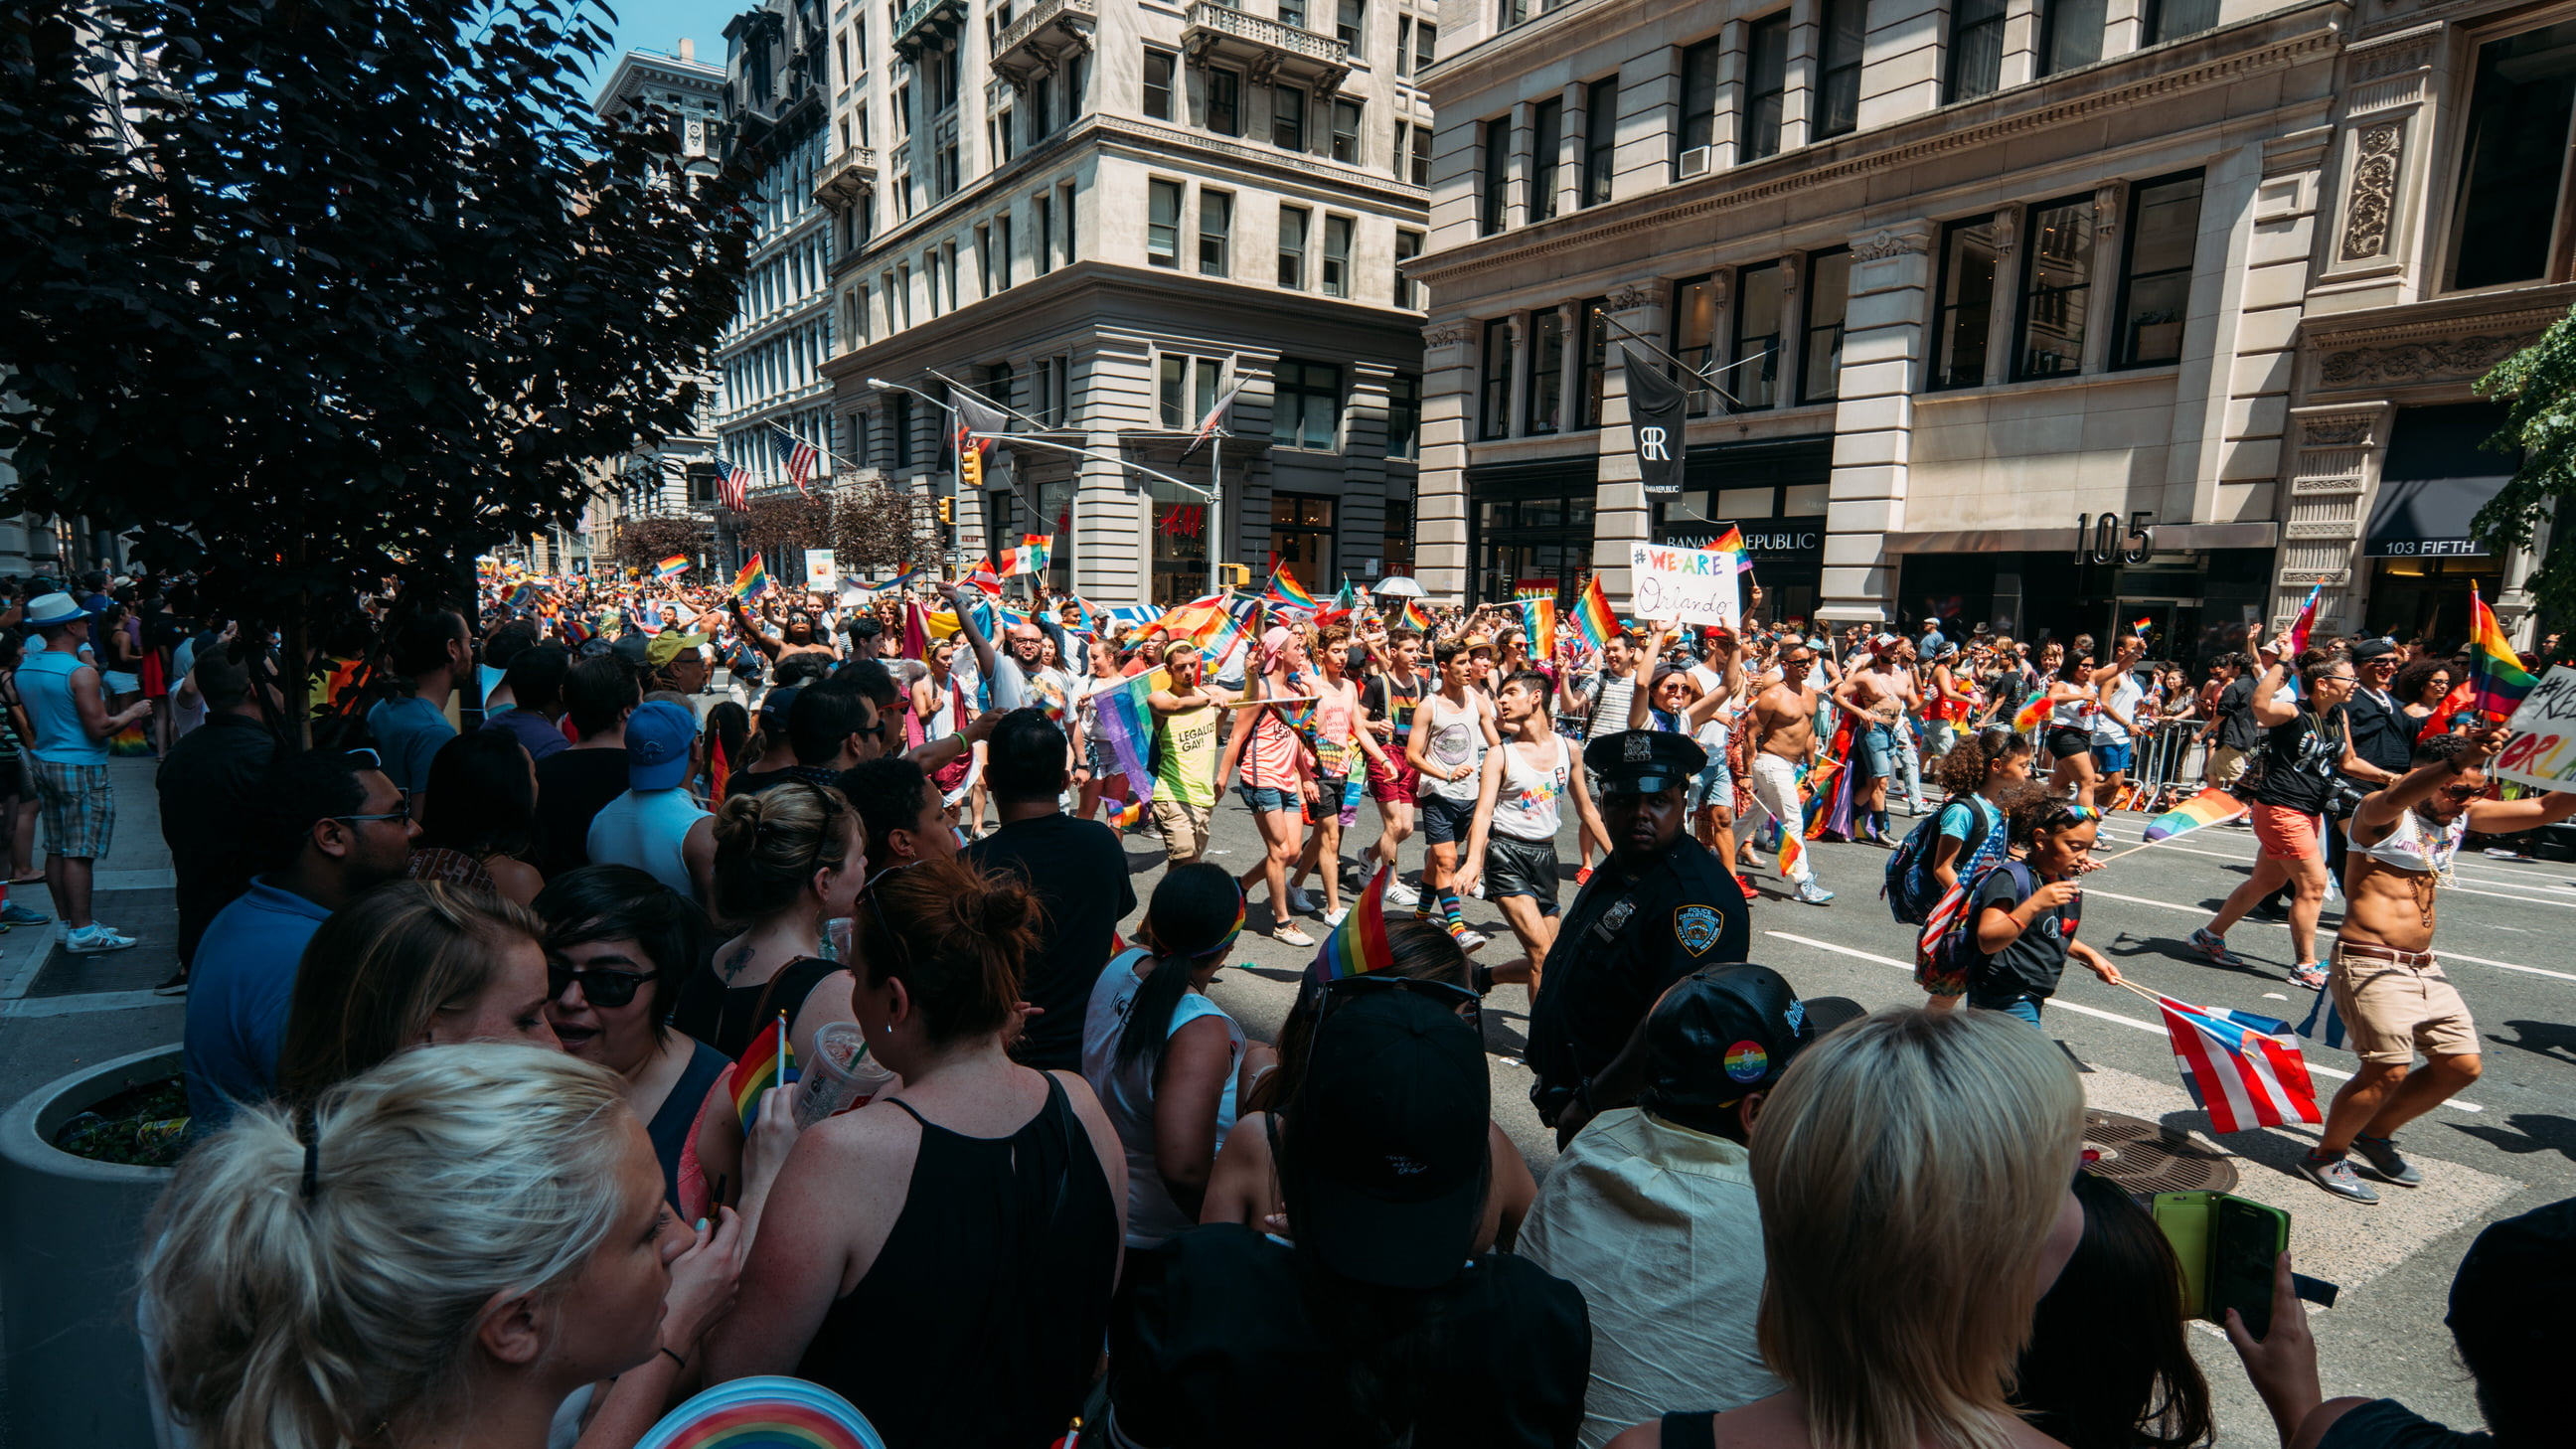 New York City's Annual LGBT Celebration and Parade